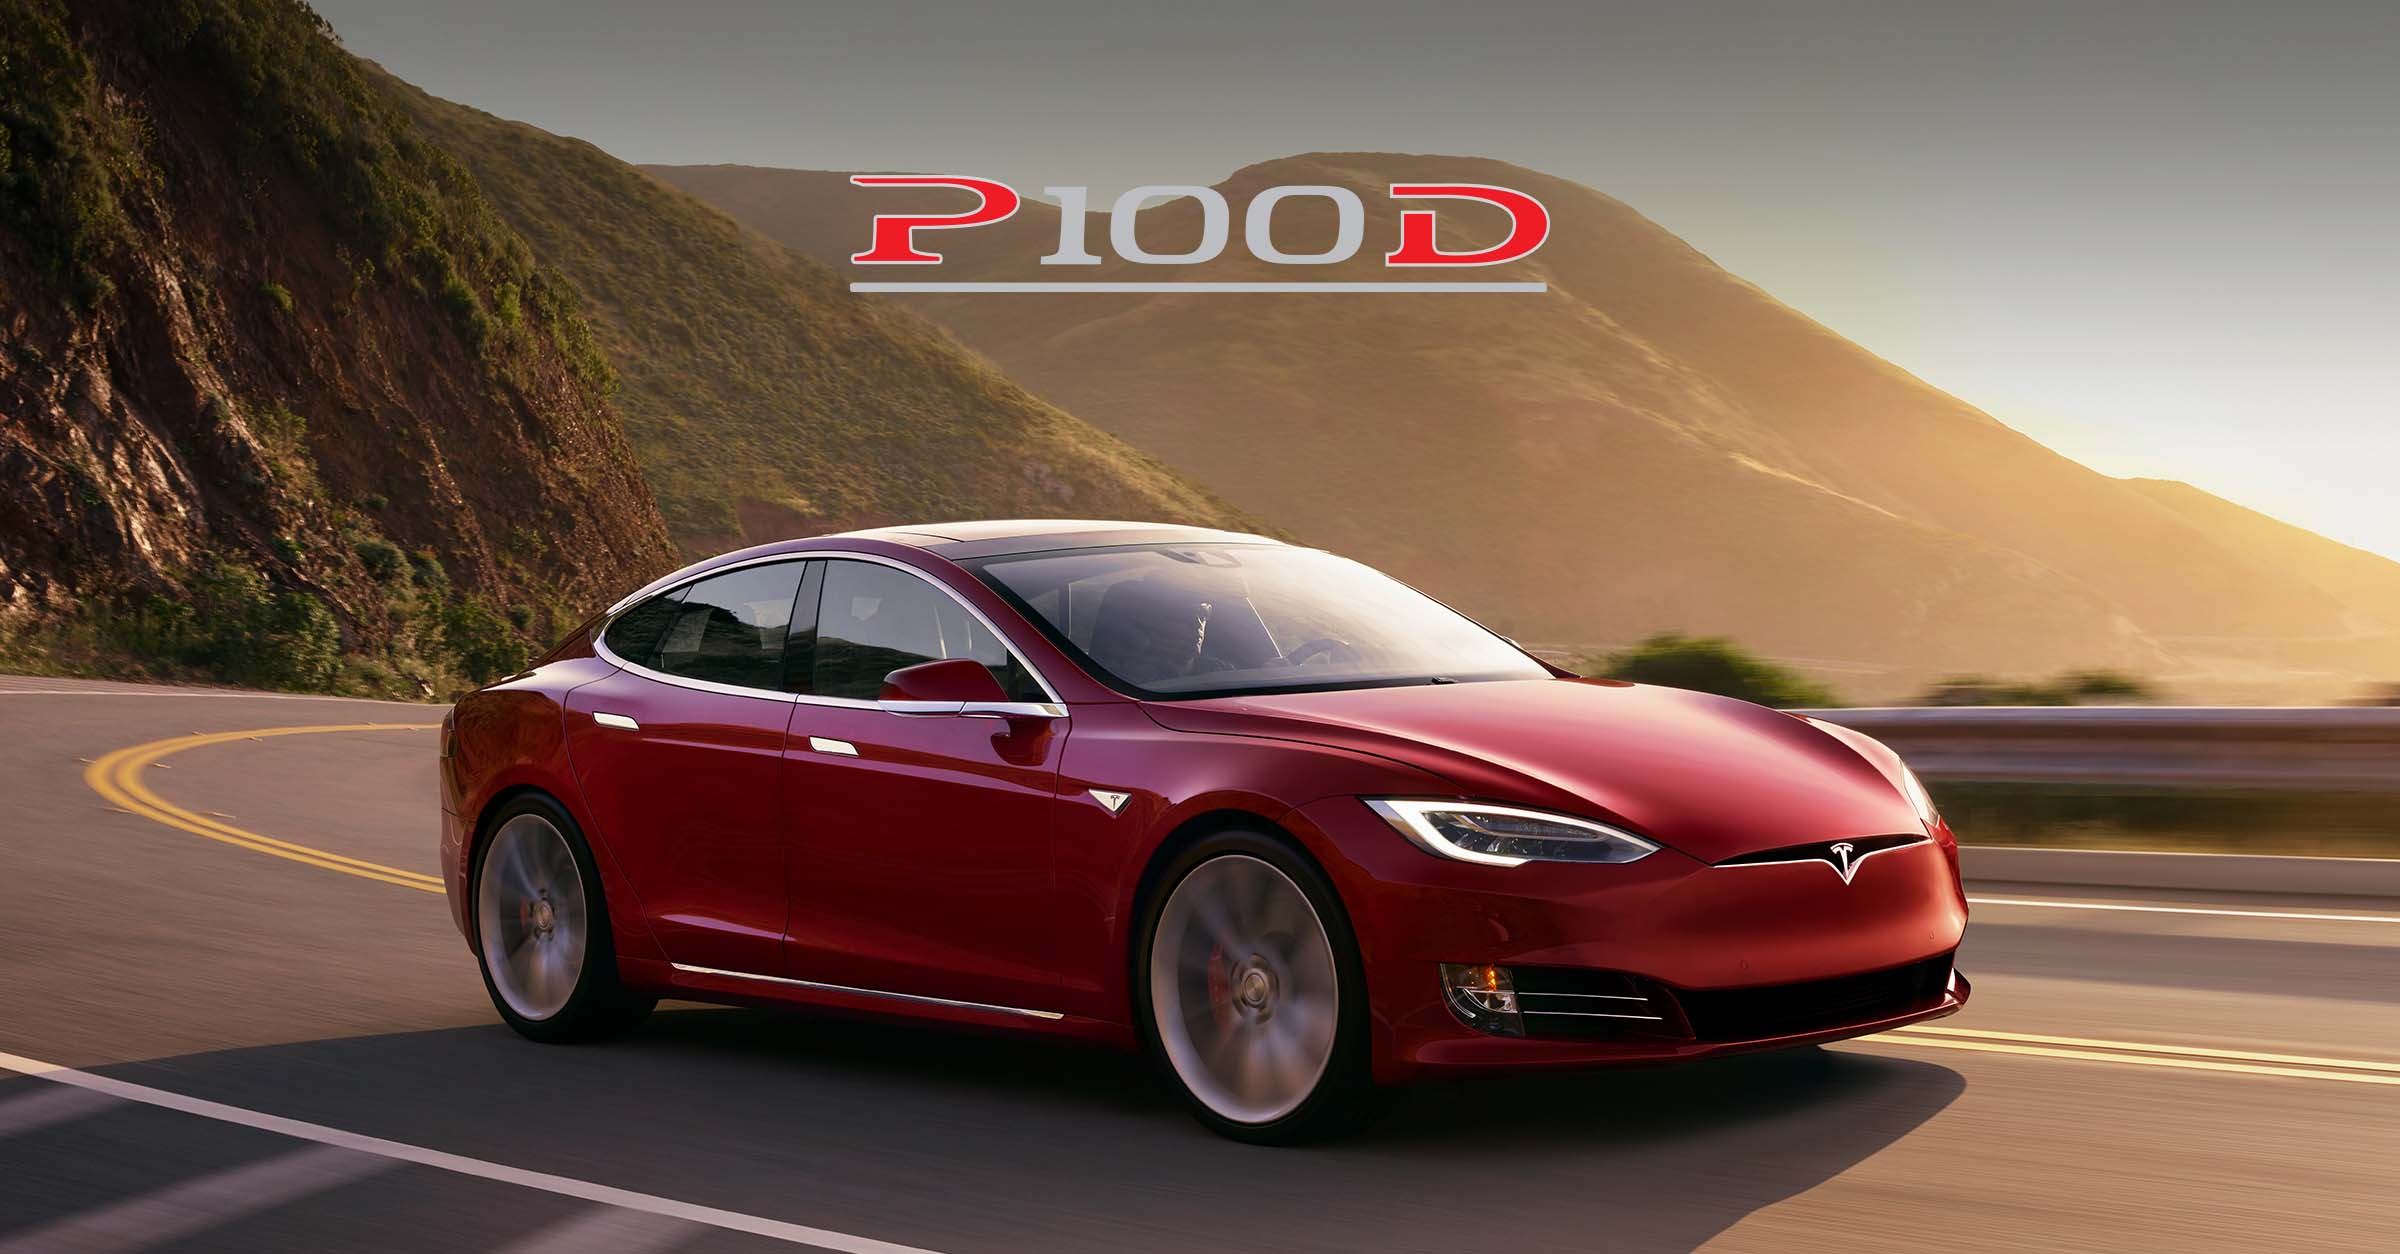 Images of Tesla Model S P100D